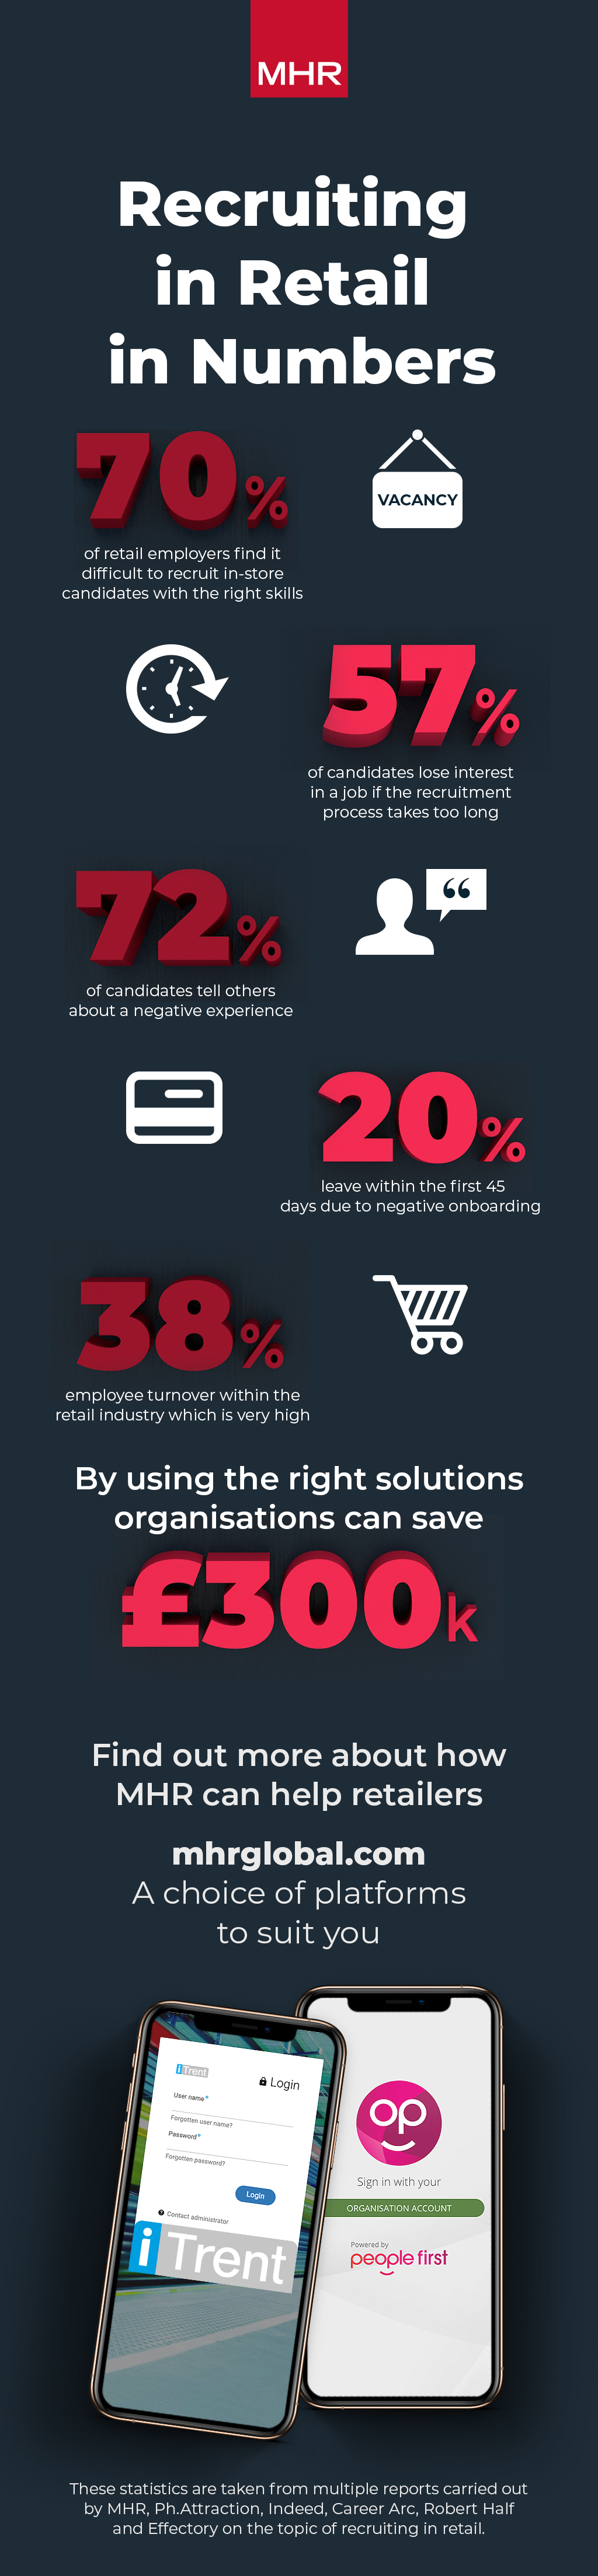 Recruiting in retail in number infographic